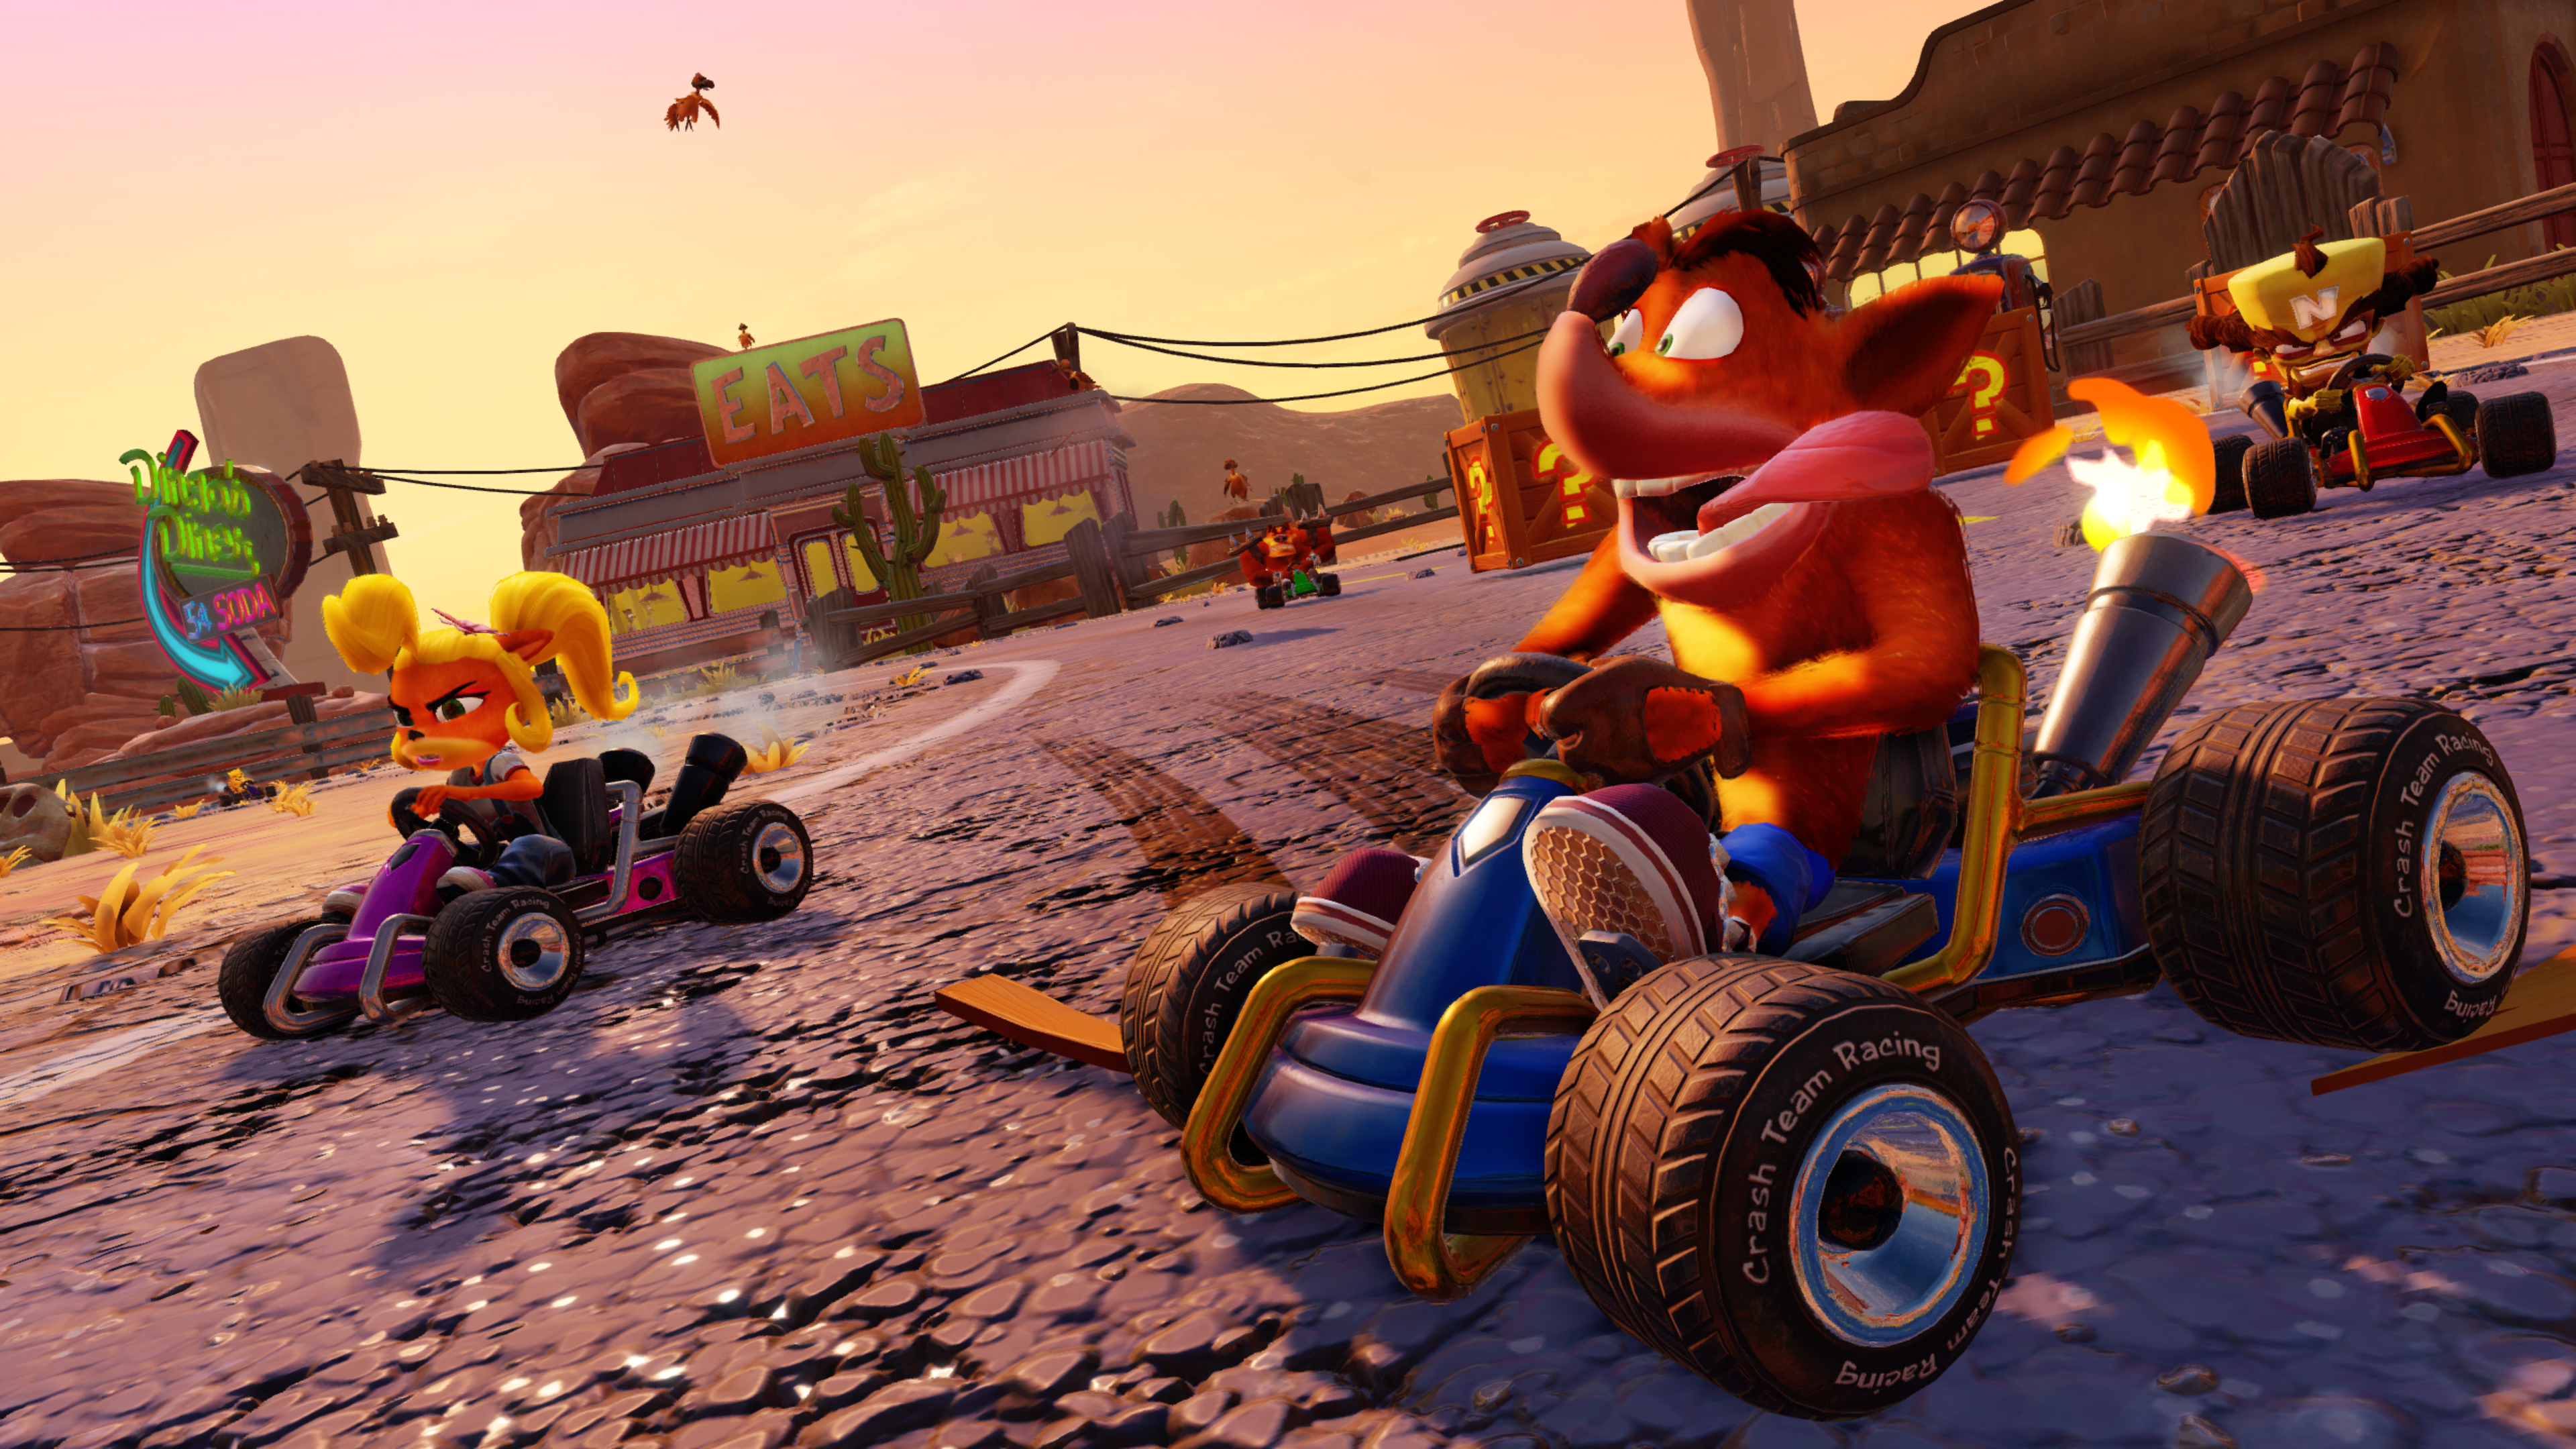 Crash Team Racing Nitro-Fueled Returns to the Top of the Weekly UK